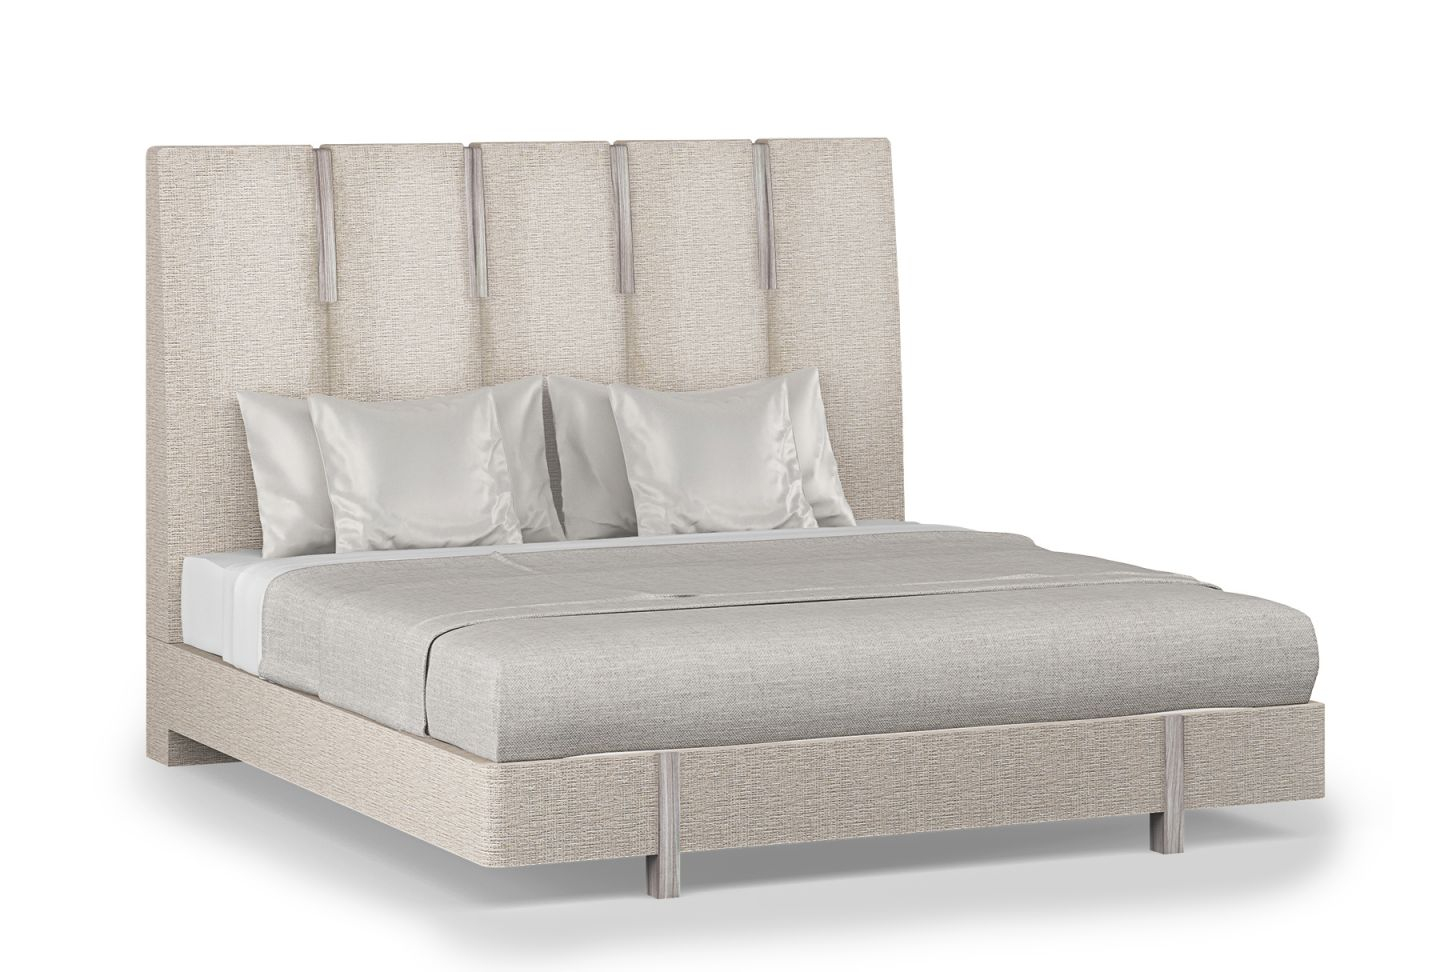 Signature Zarra King Bed within King Bed Frame With Headboard